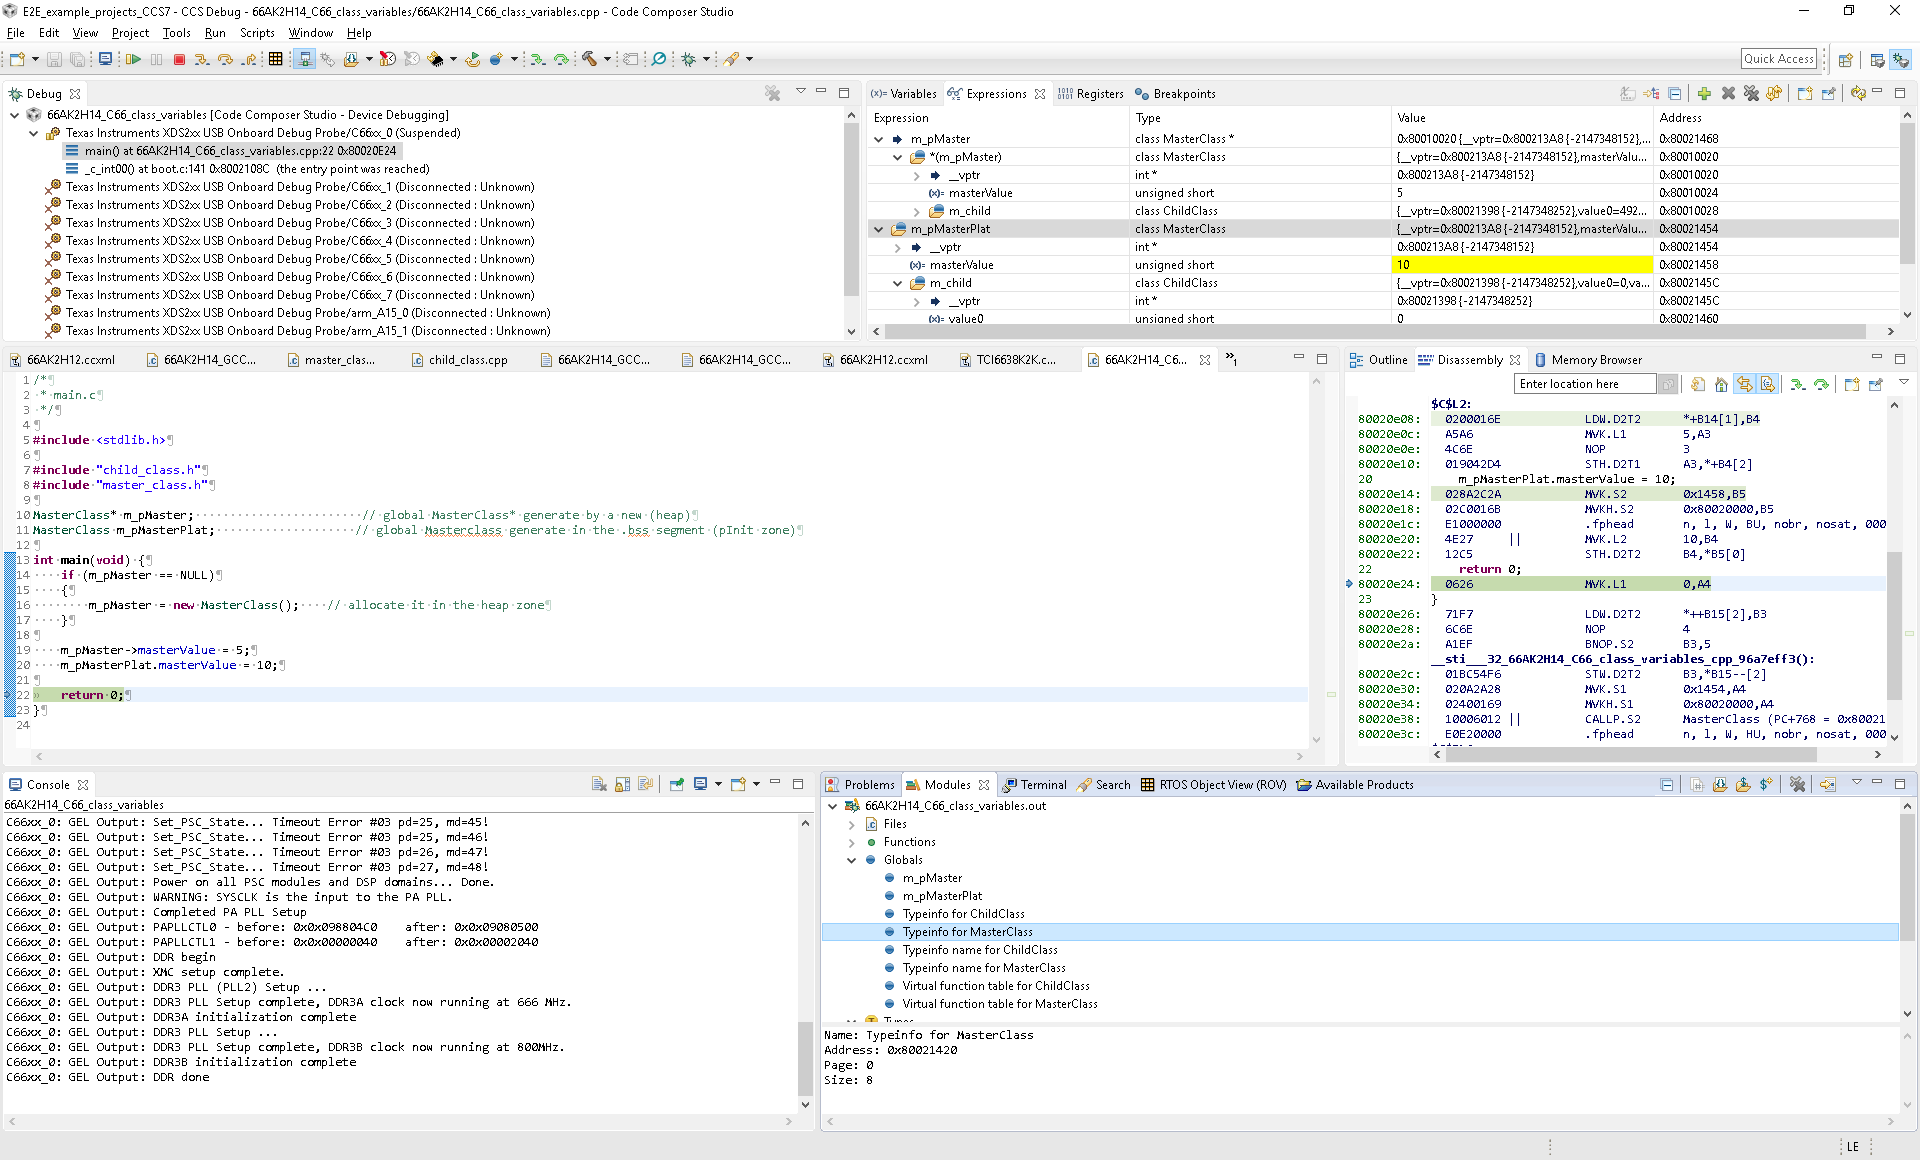 CCS/66AK2H12: CCS debugging objects derived from virtual